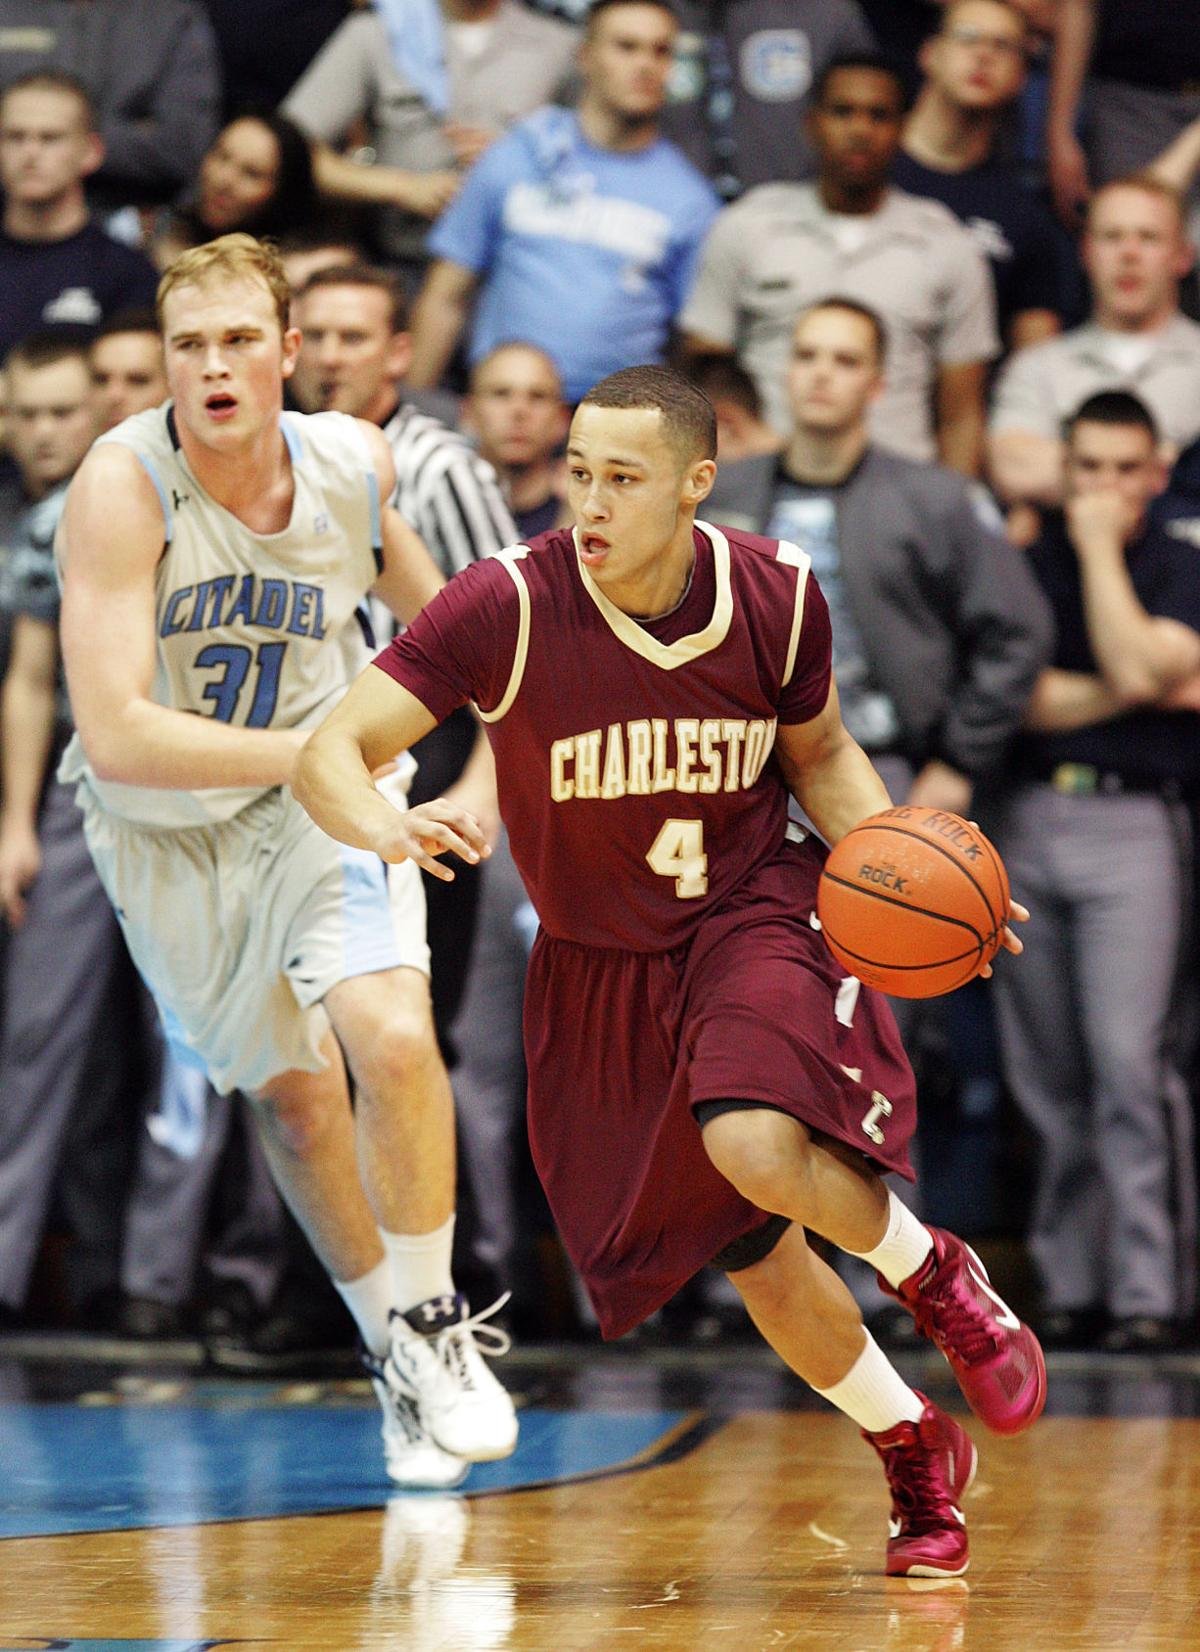 College of Charleston's Andrew Lawrence to play for Great Britain in Olympics